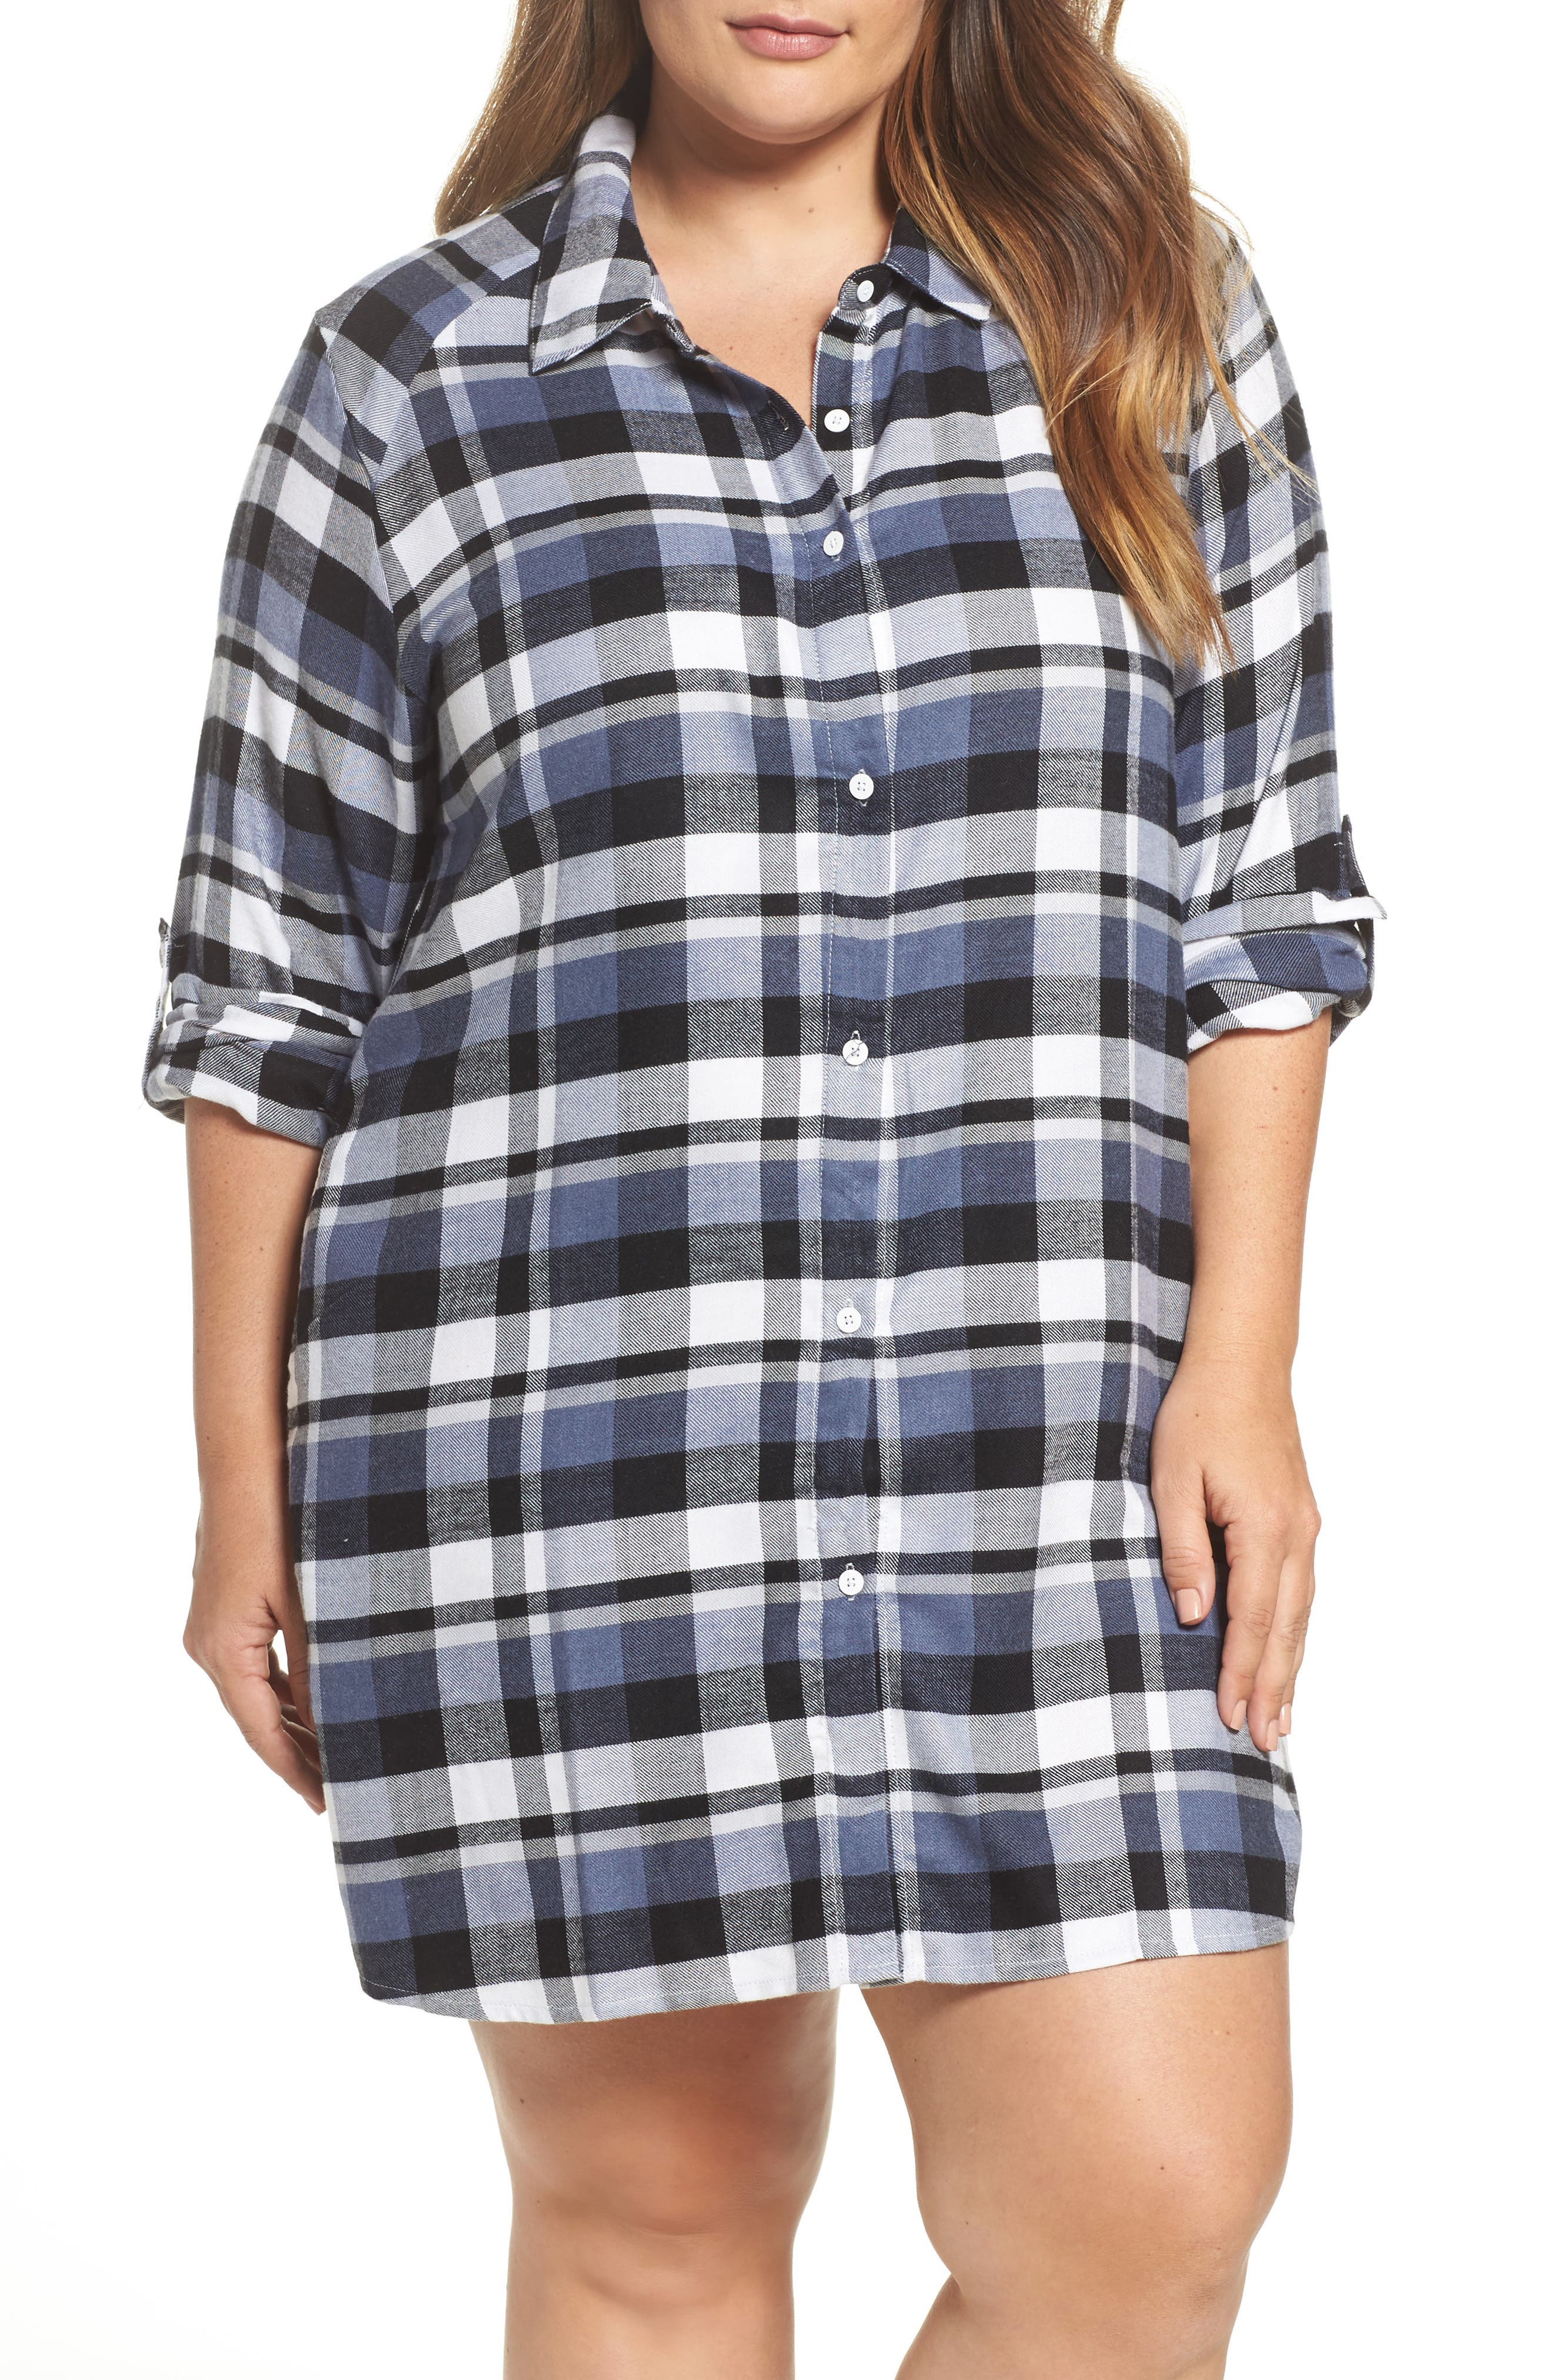 Plaid Sleep Shirt,                             Main thumbnail 1, color,                             400